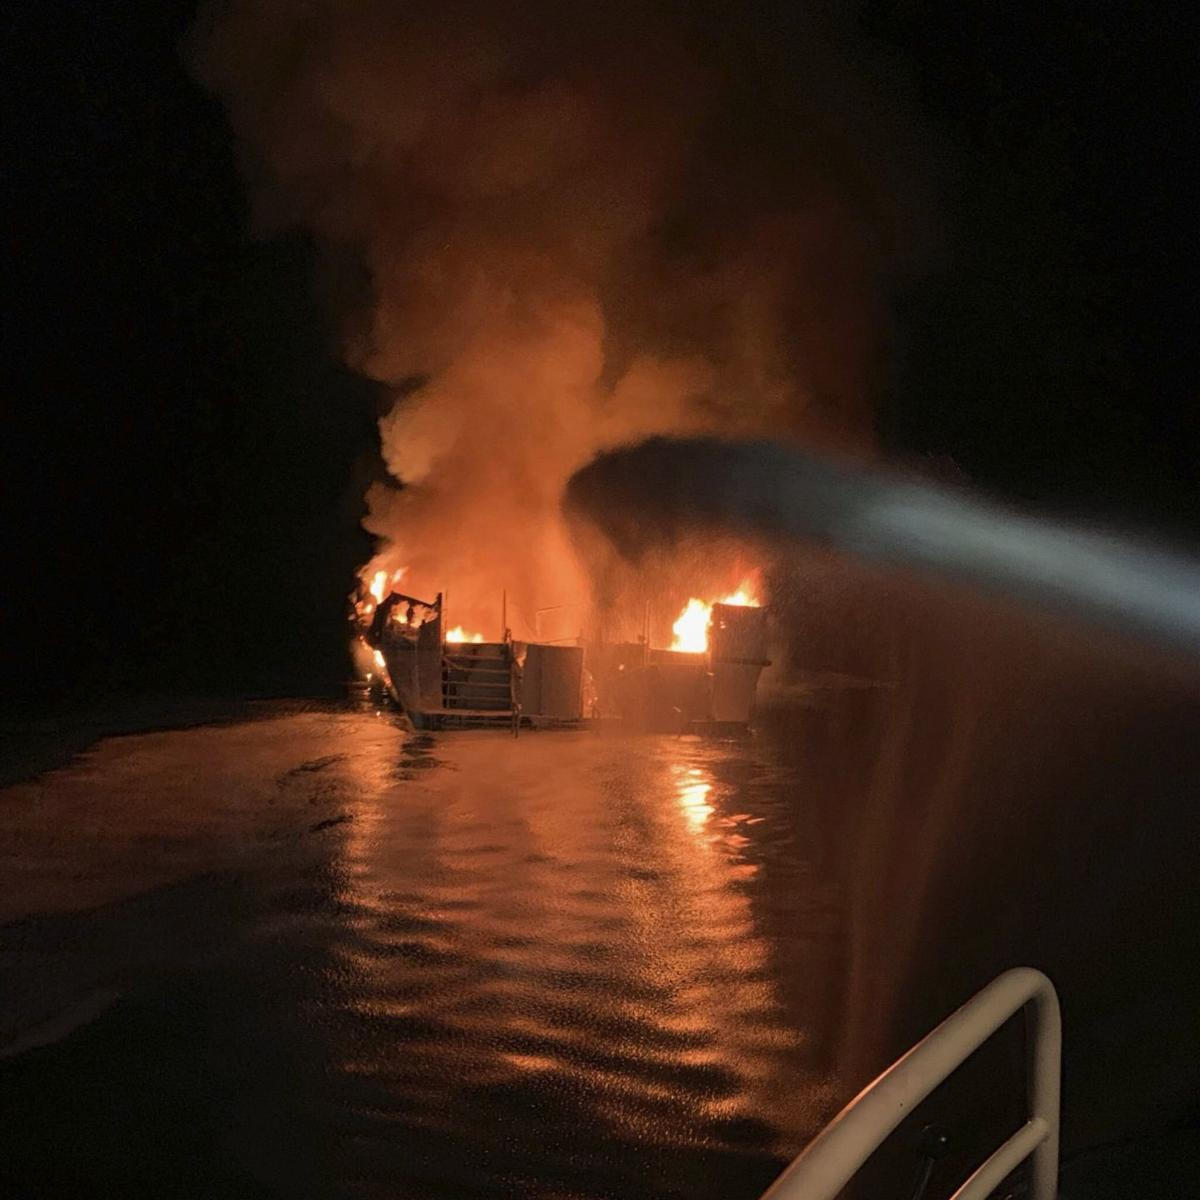 No one found alive among 34 missing after dive boat catches